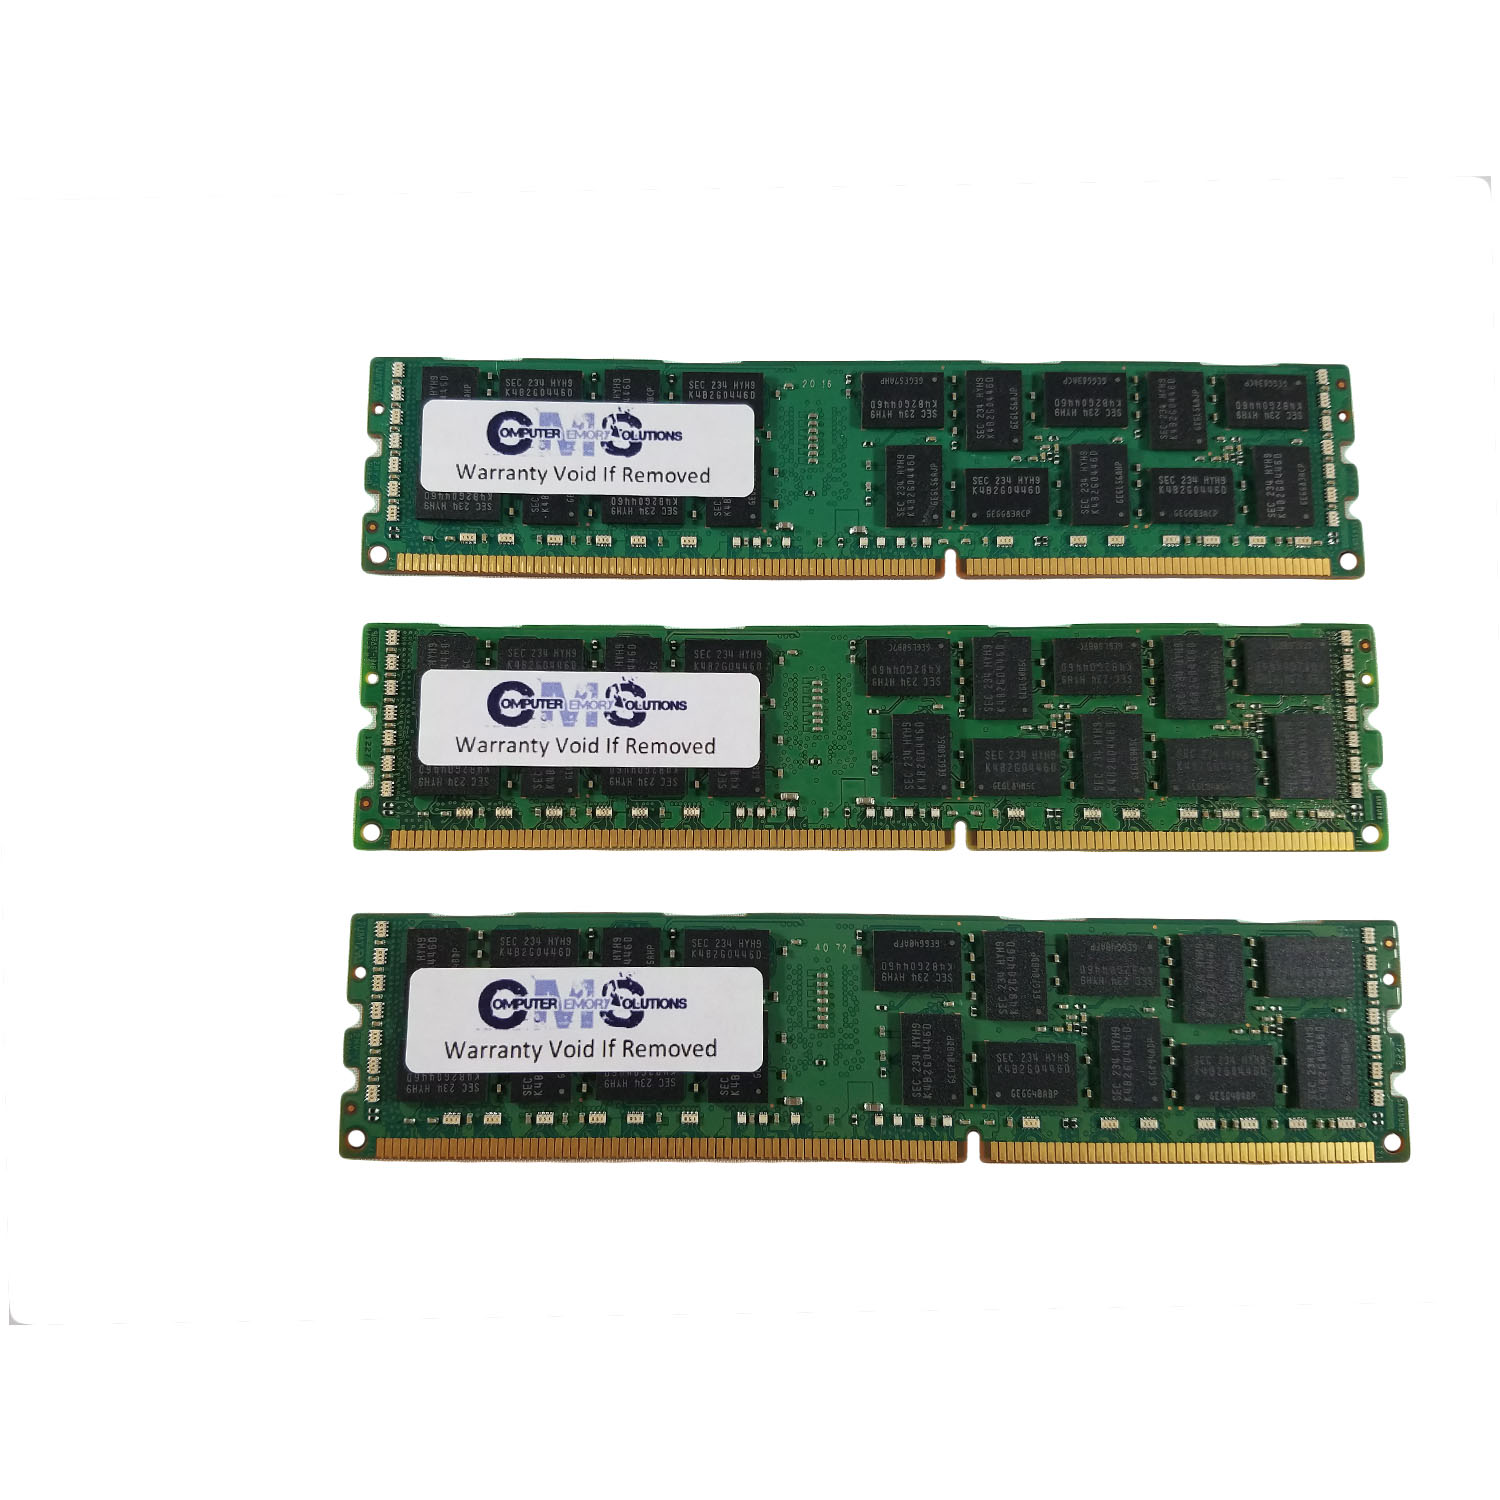 24Gb (3X8Gb) Ram Memory Compatible Hp/Compaq Proliant Ml350 G6 Ddr3-1333 Ecc Reg For Server Only By CMS B105